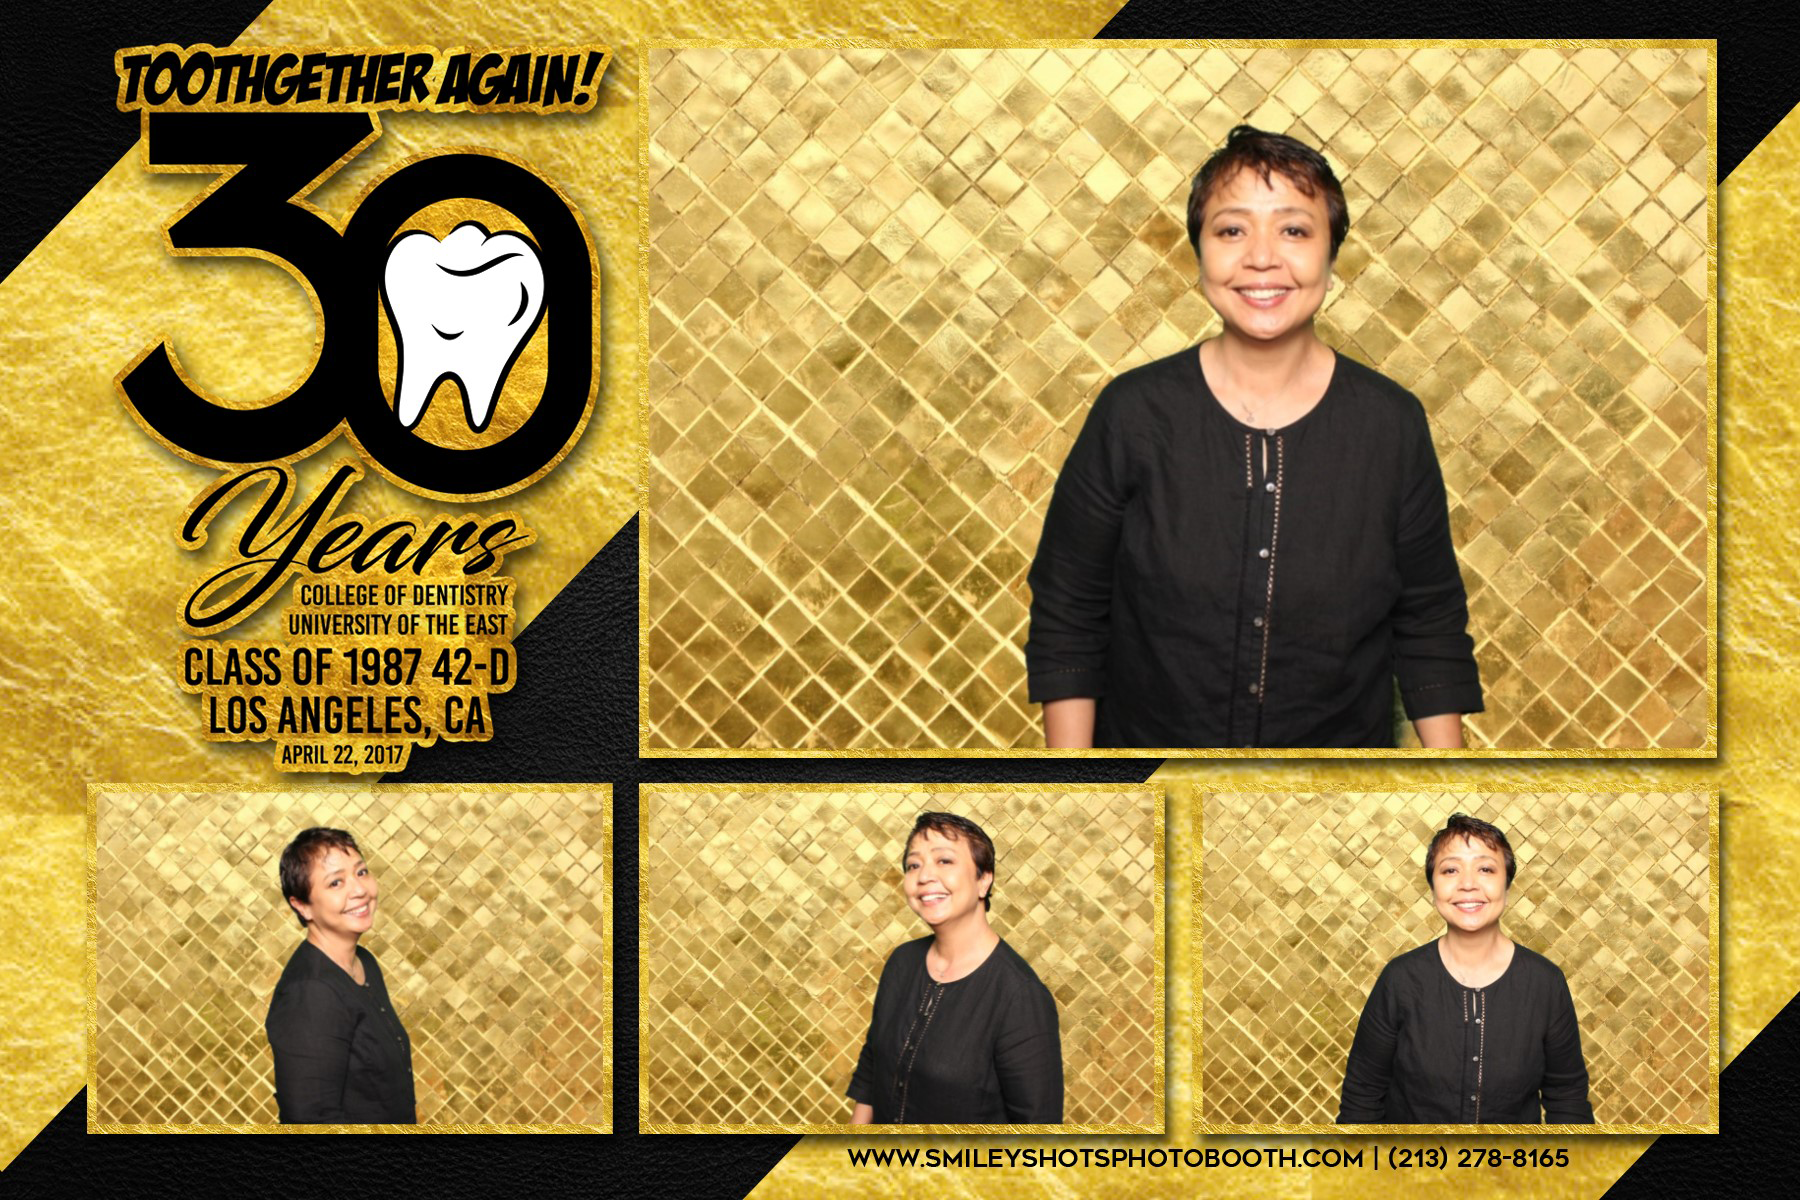 30th Years Dental UE Smiley Shots Photo Booth Photobooth (9).png